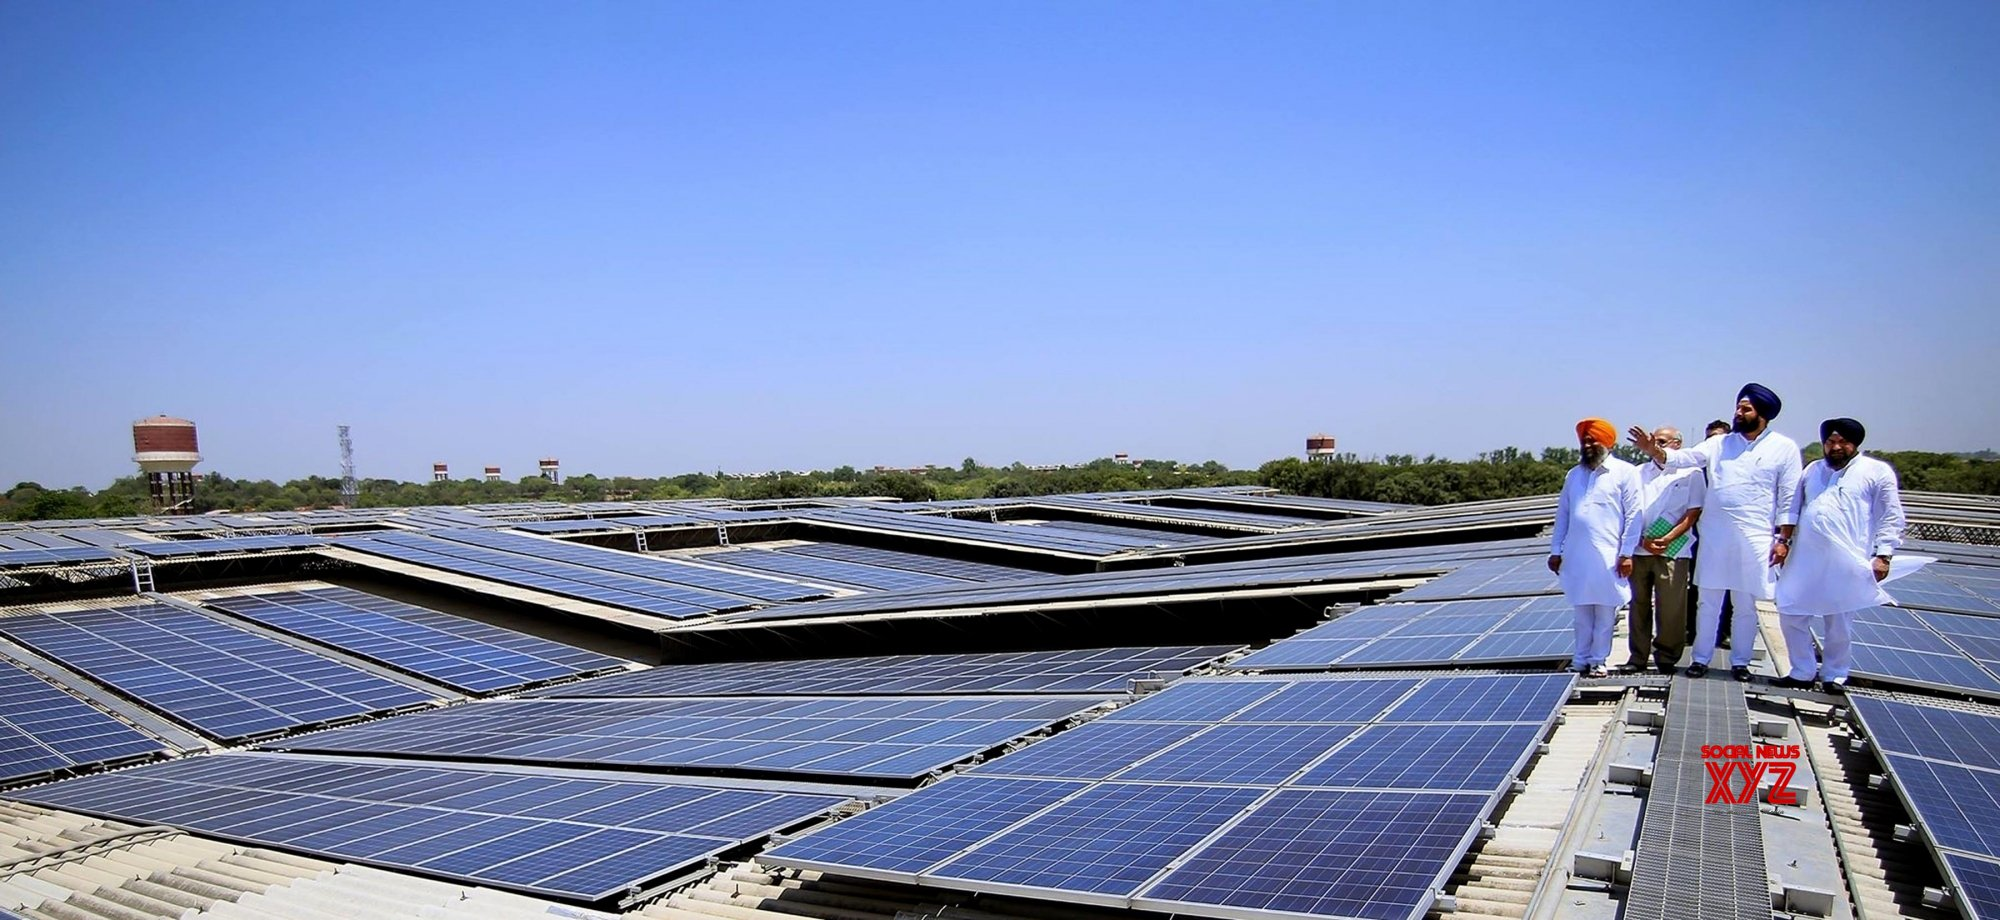 Solar energy cost to fall to Rs 1.9 per unit by 2030 in India: TERI study